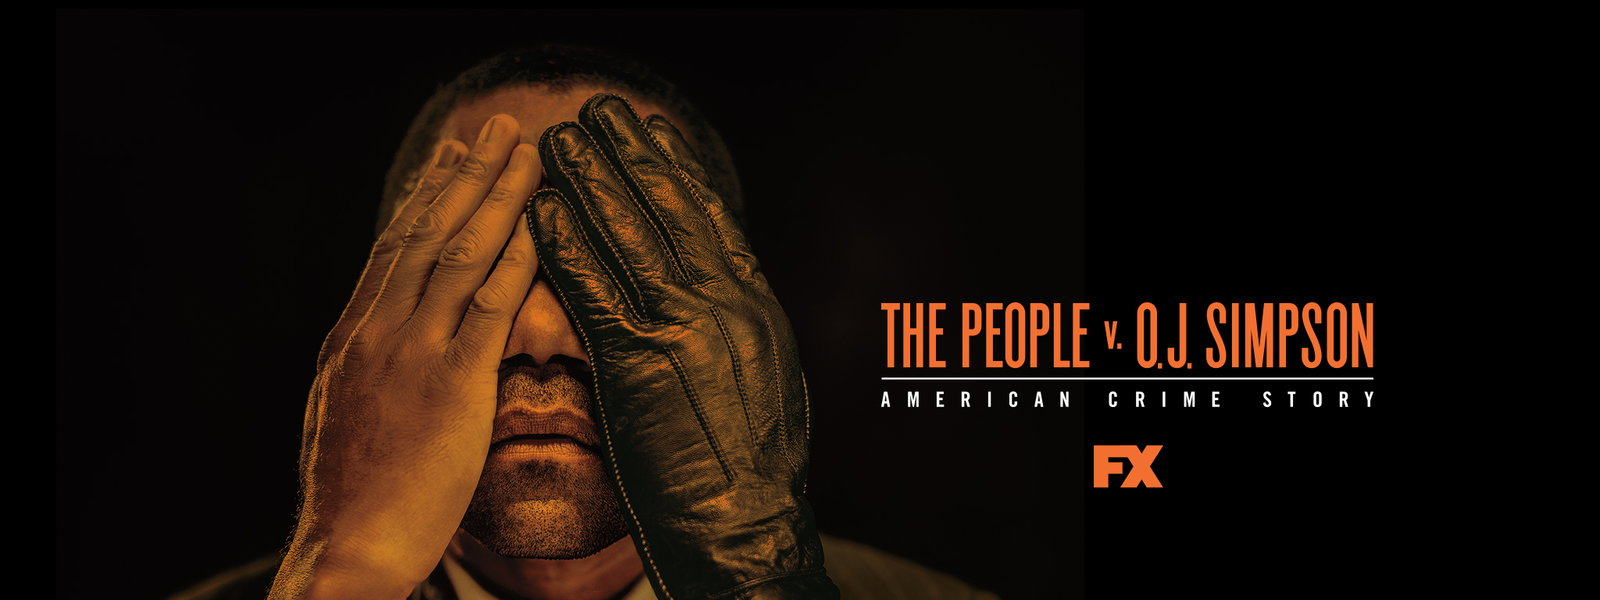 The People vs O.J. Simpson: American Crime Story